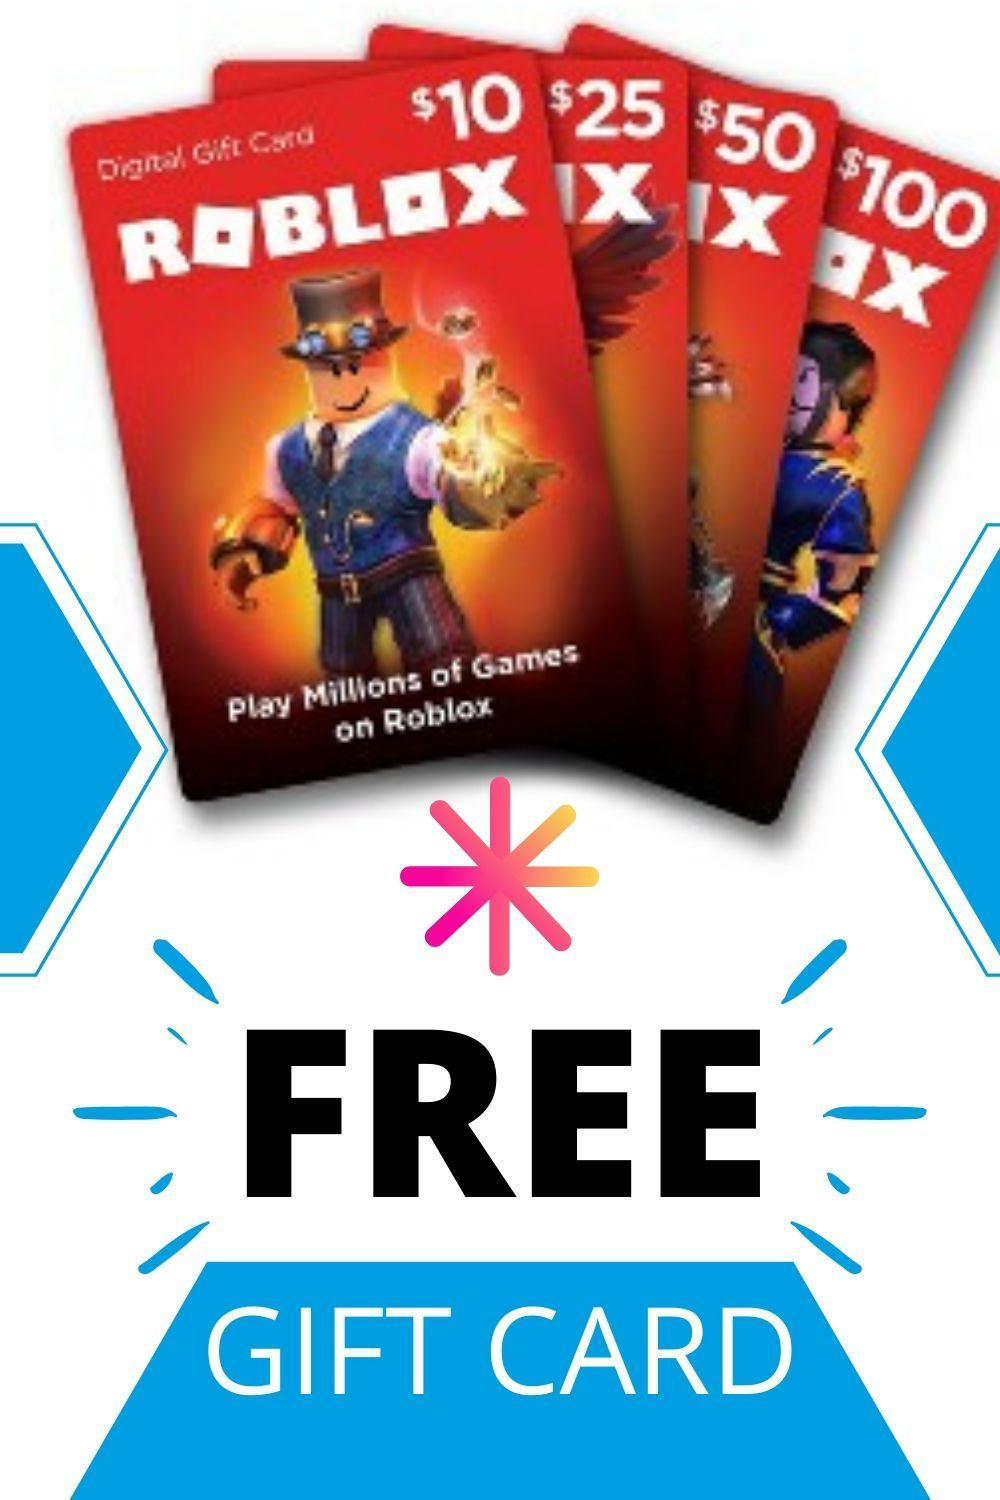 Free roblox gift card codes 2020_free 1k robux by roblox